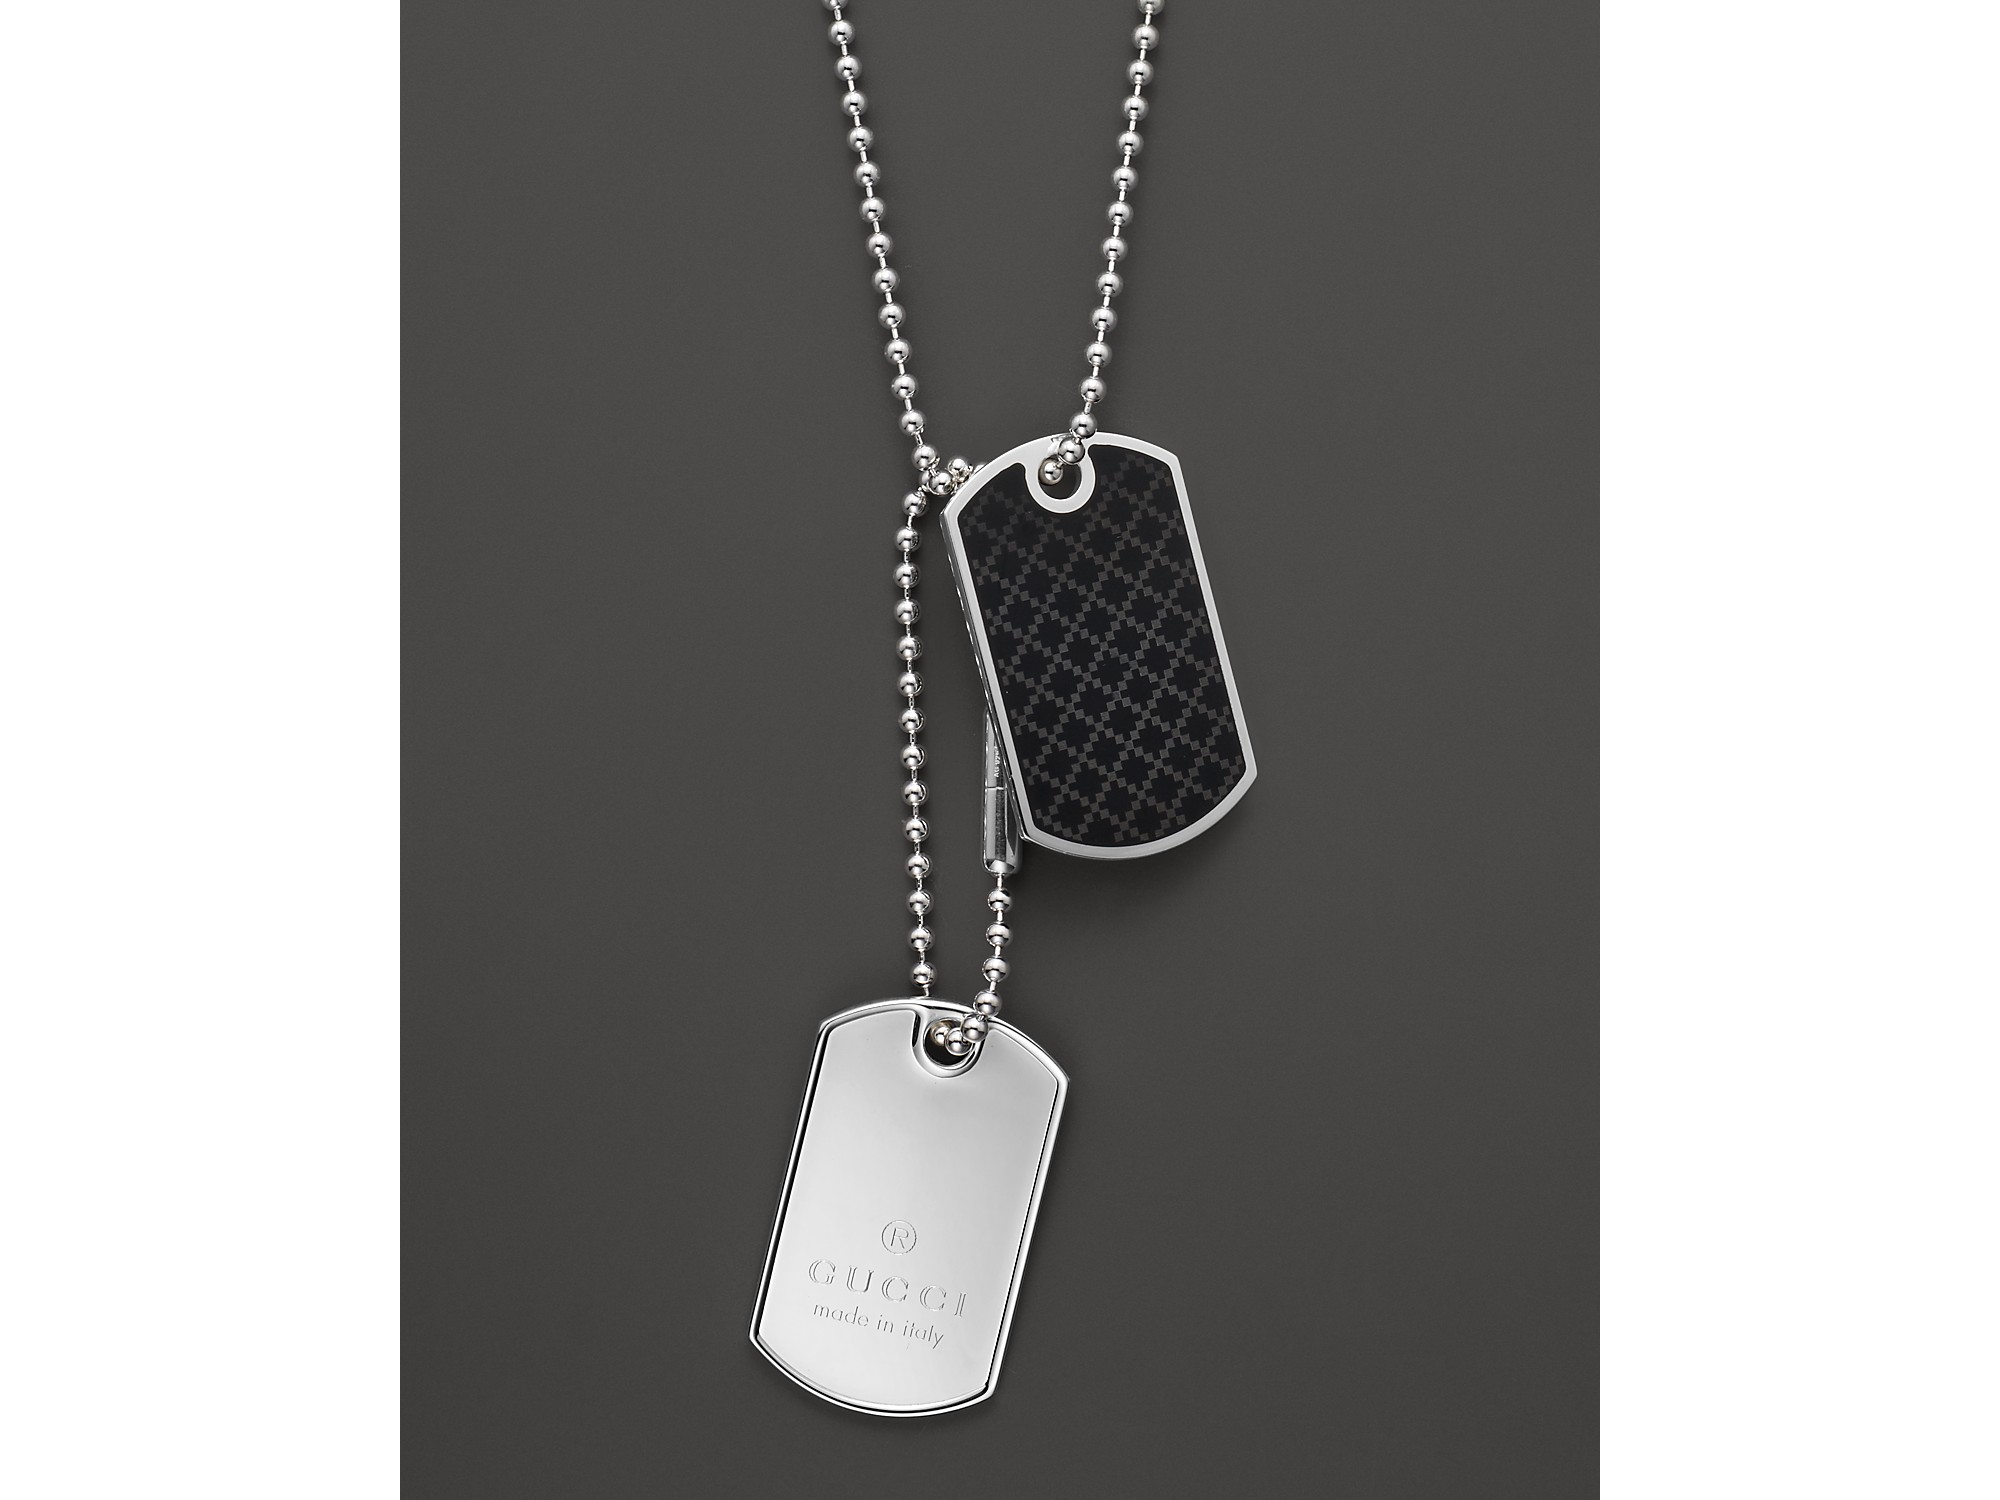 Gucci Dog Tag Necklace 236 in Black for Men - Lyst